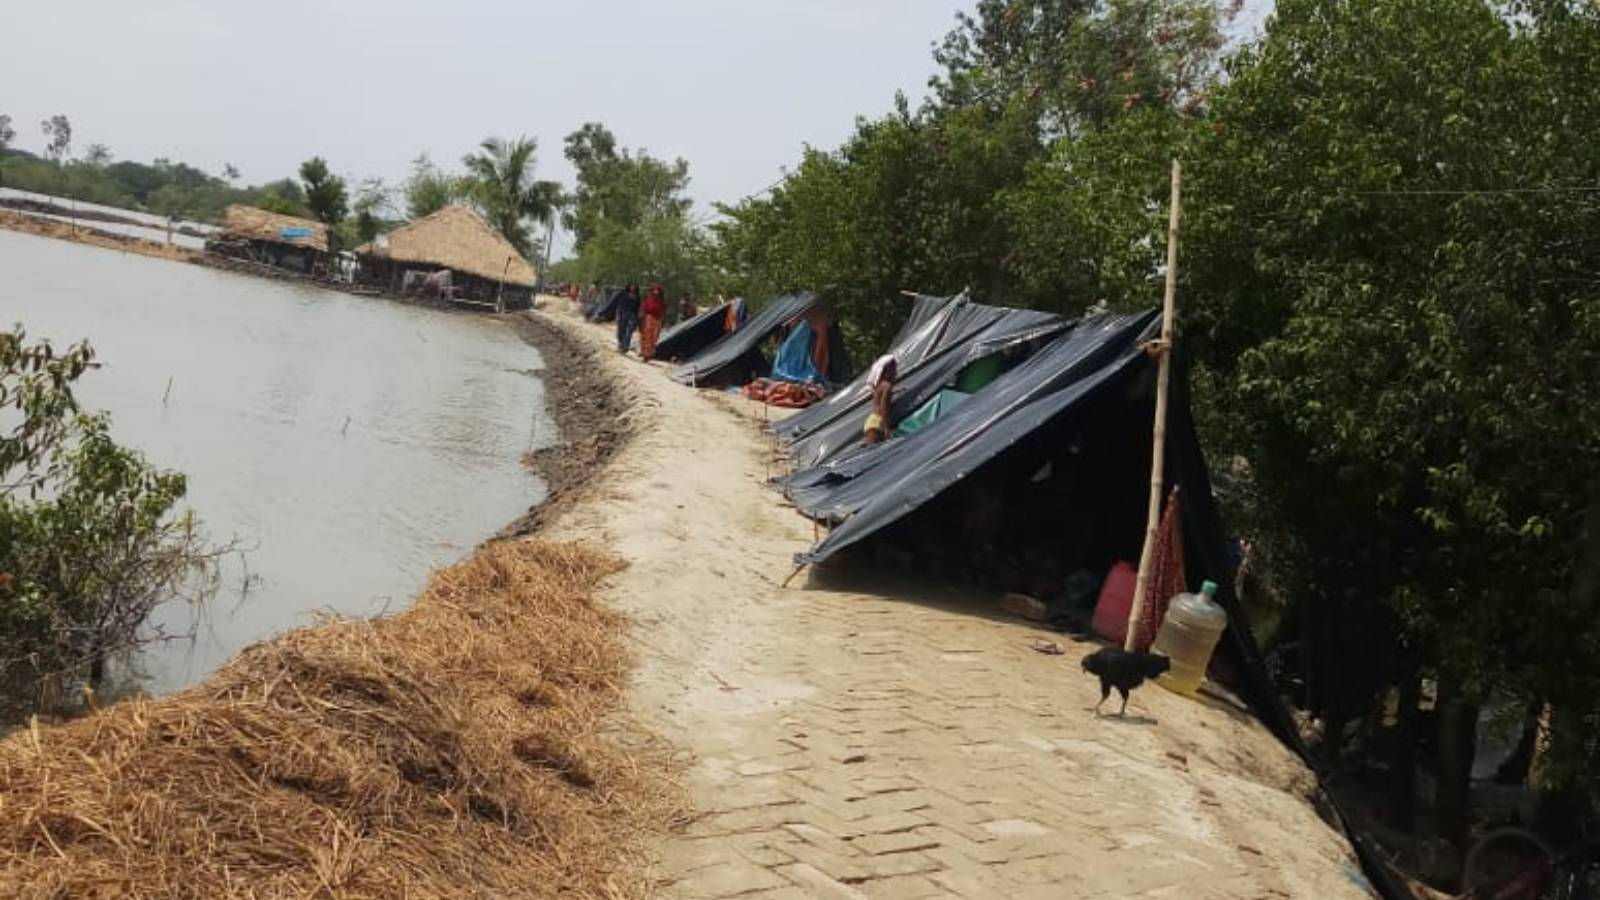 Relief Work in Cyclone YAAS affected areas in West Bengal